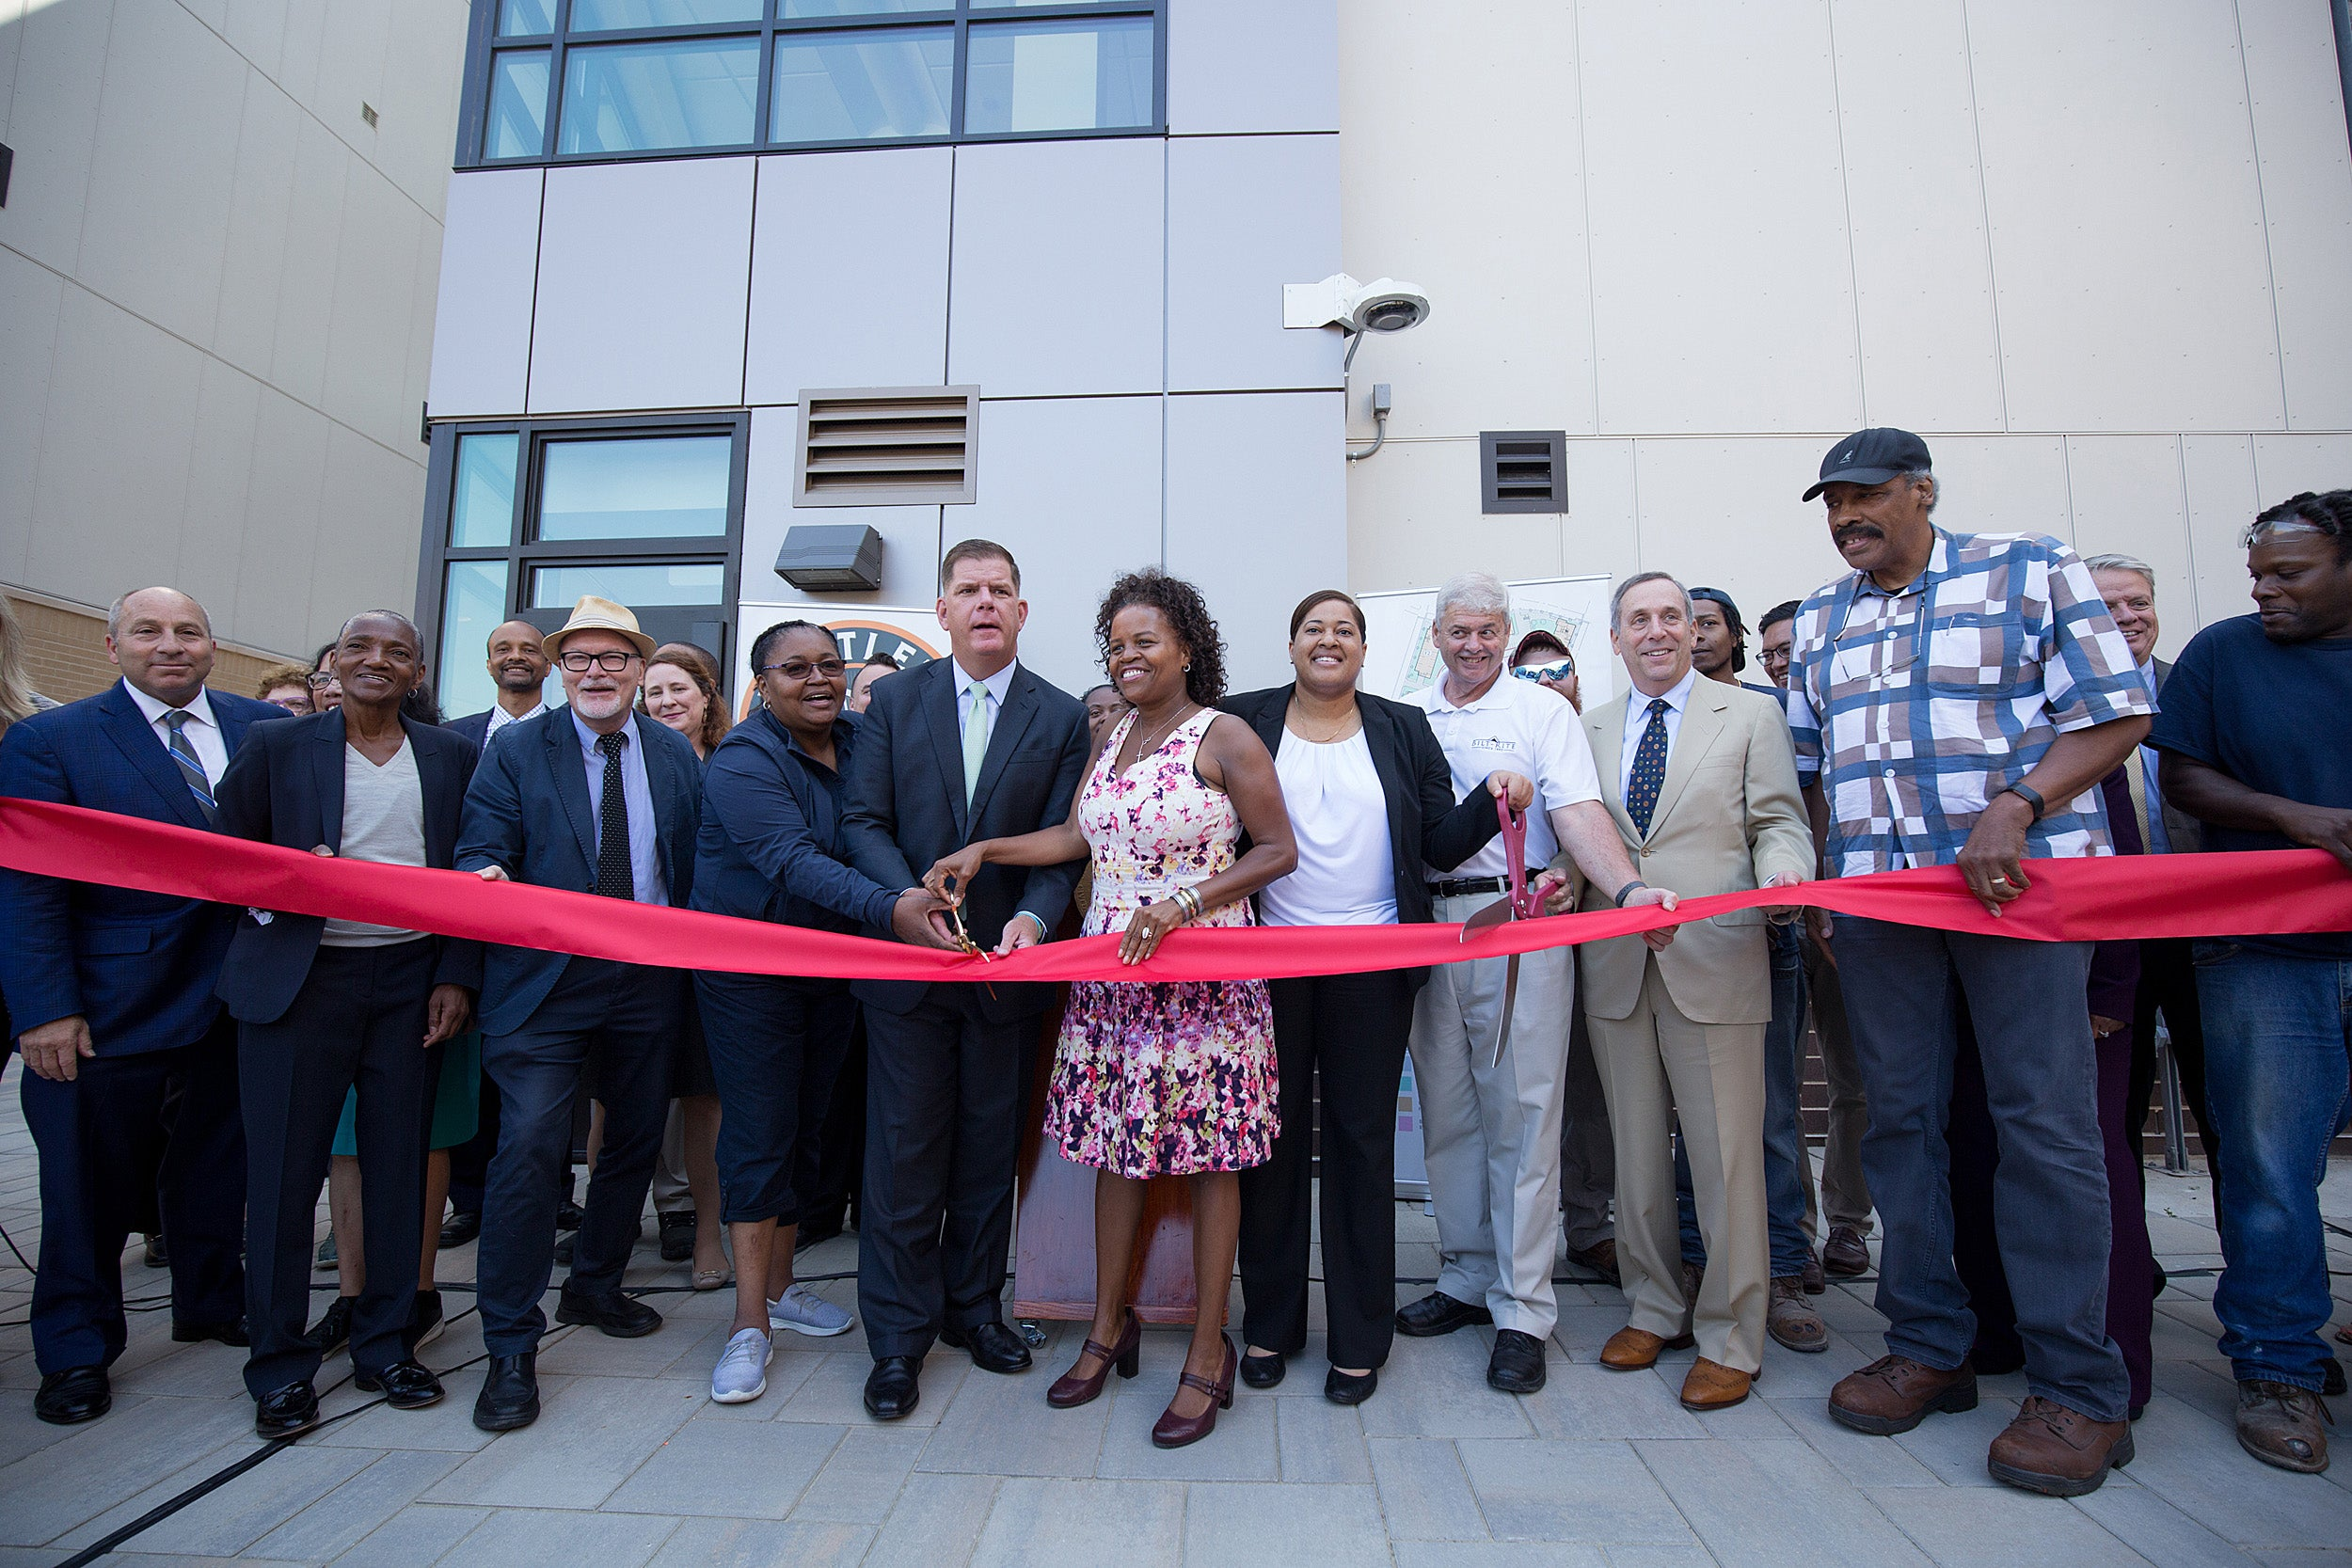 First phase of Roxbury housing development opens